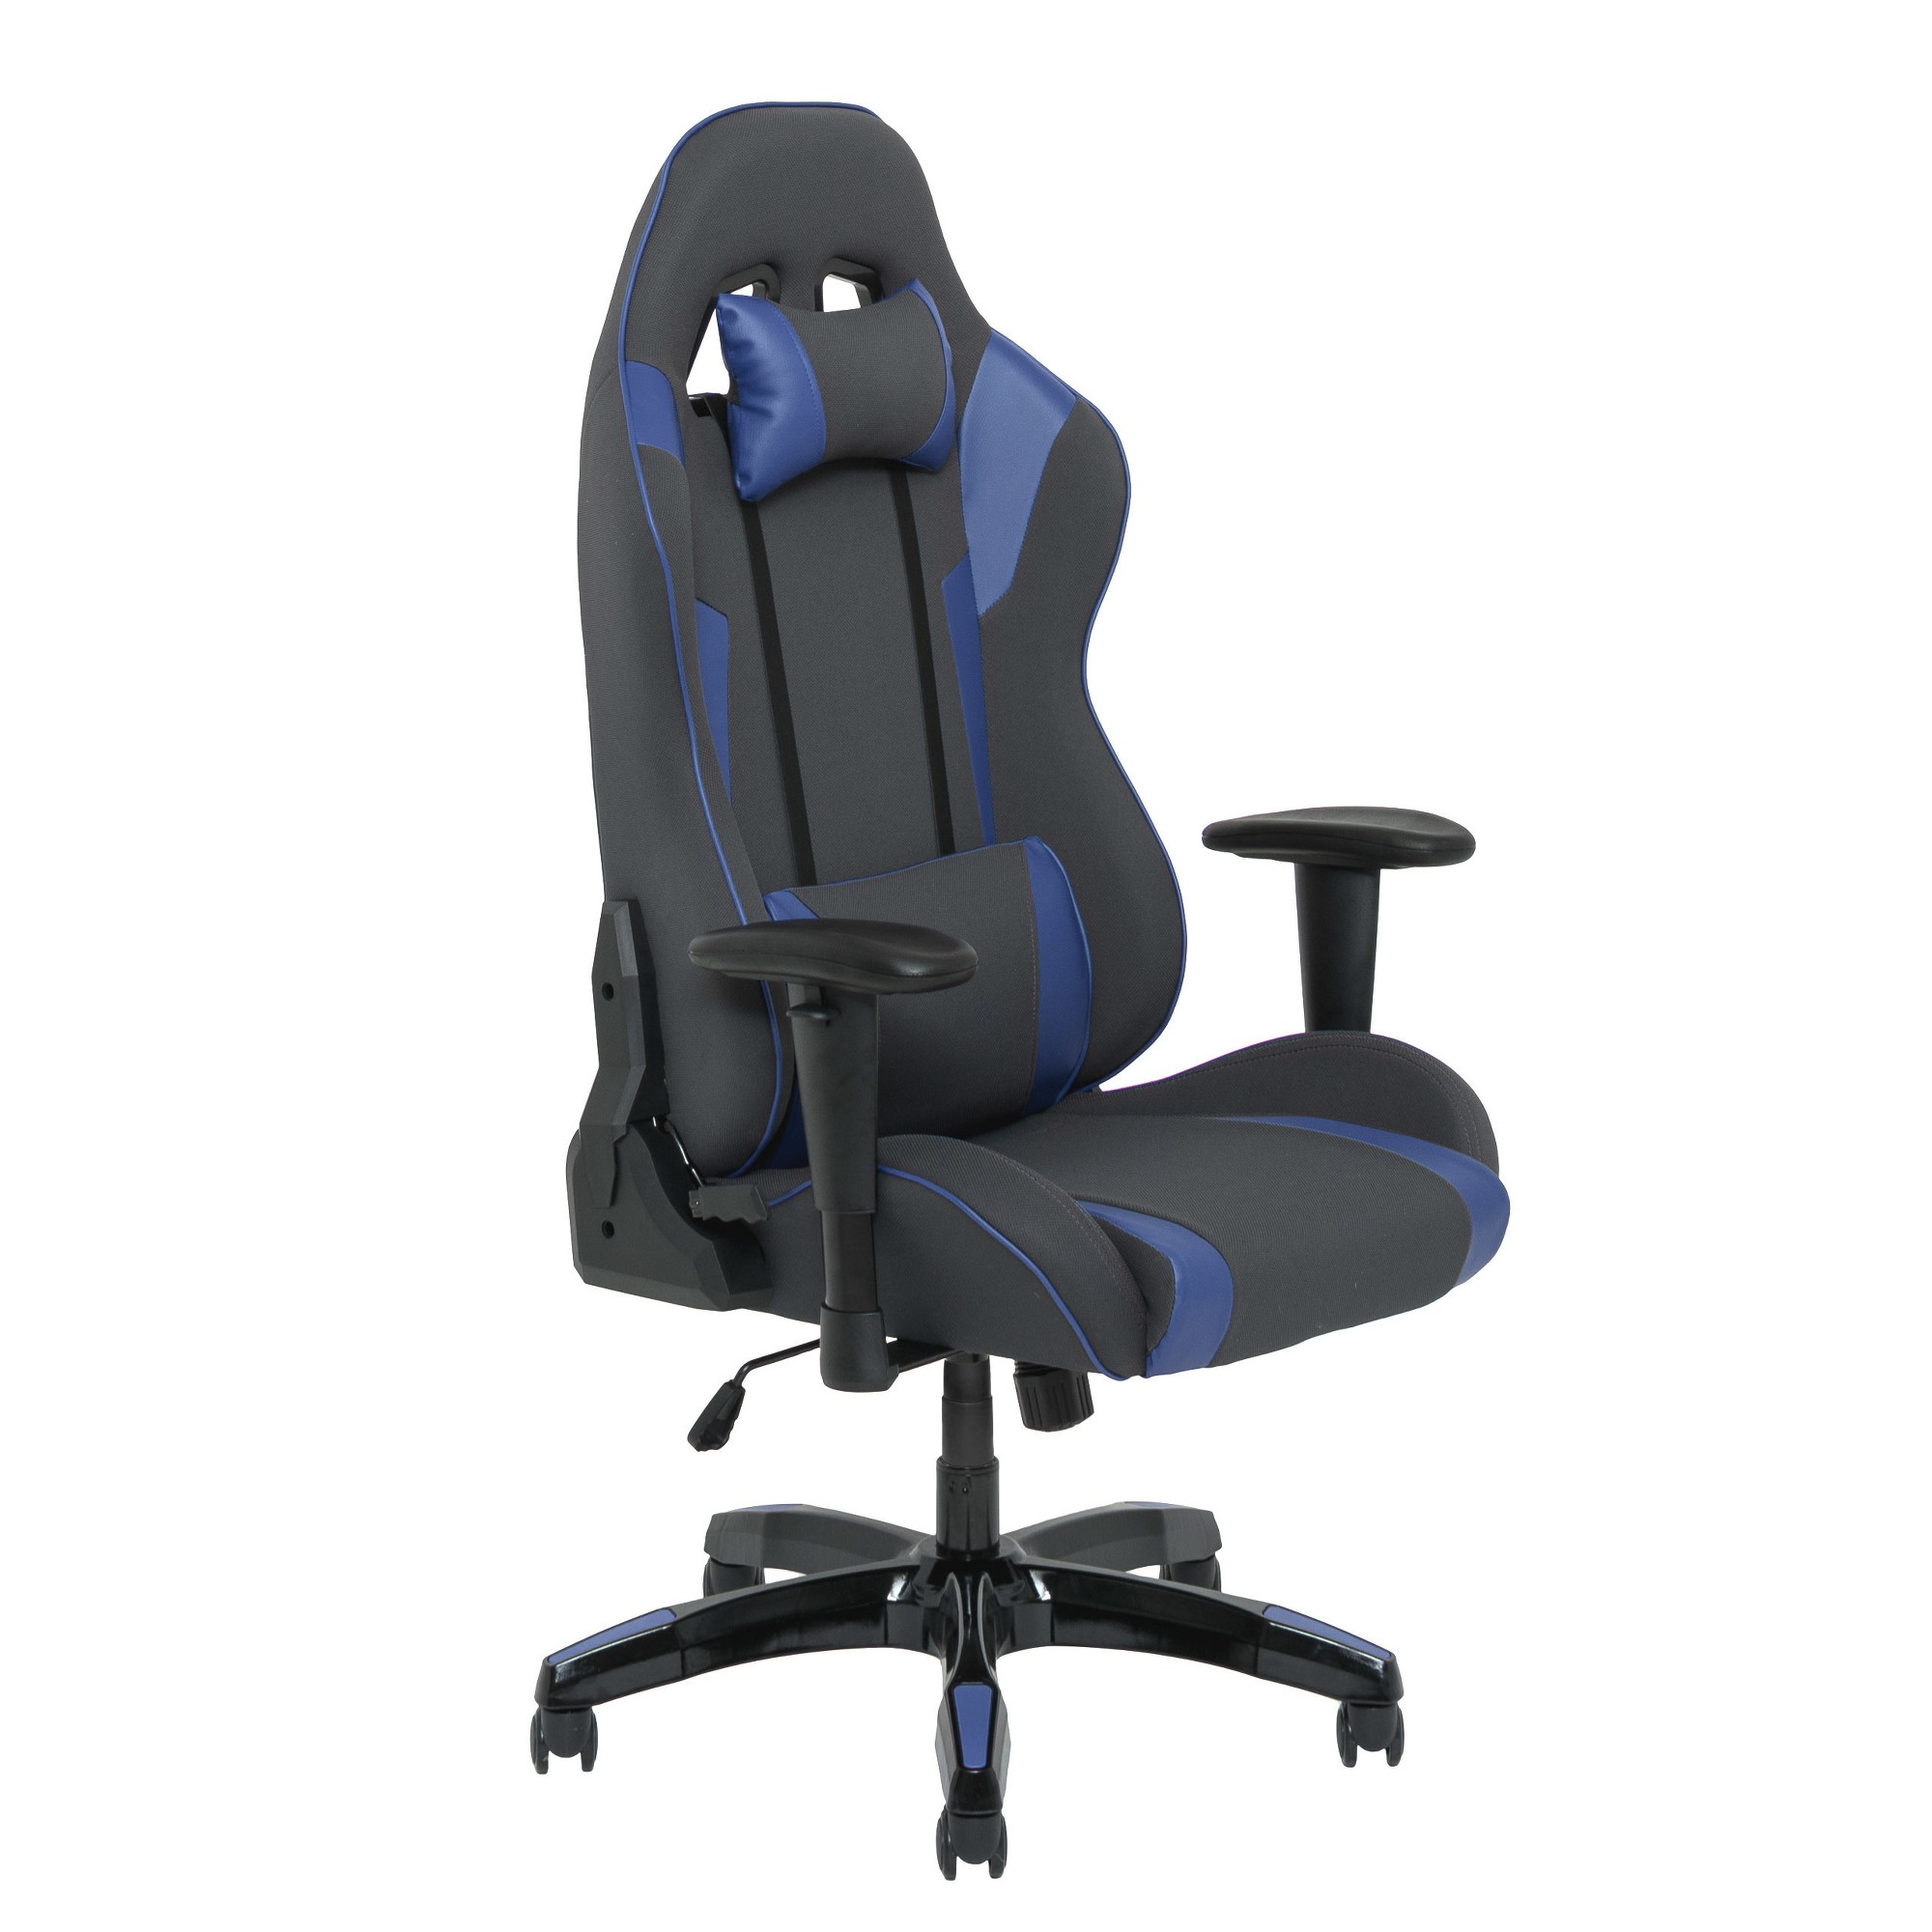 Gaming Chairs CorLiving Blue Corliving, Work space chair